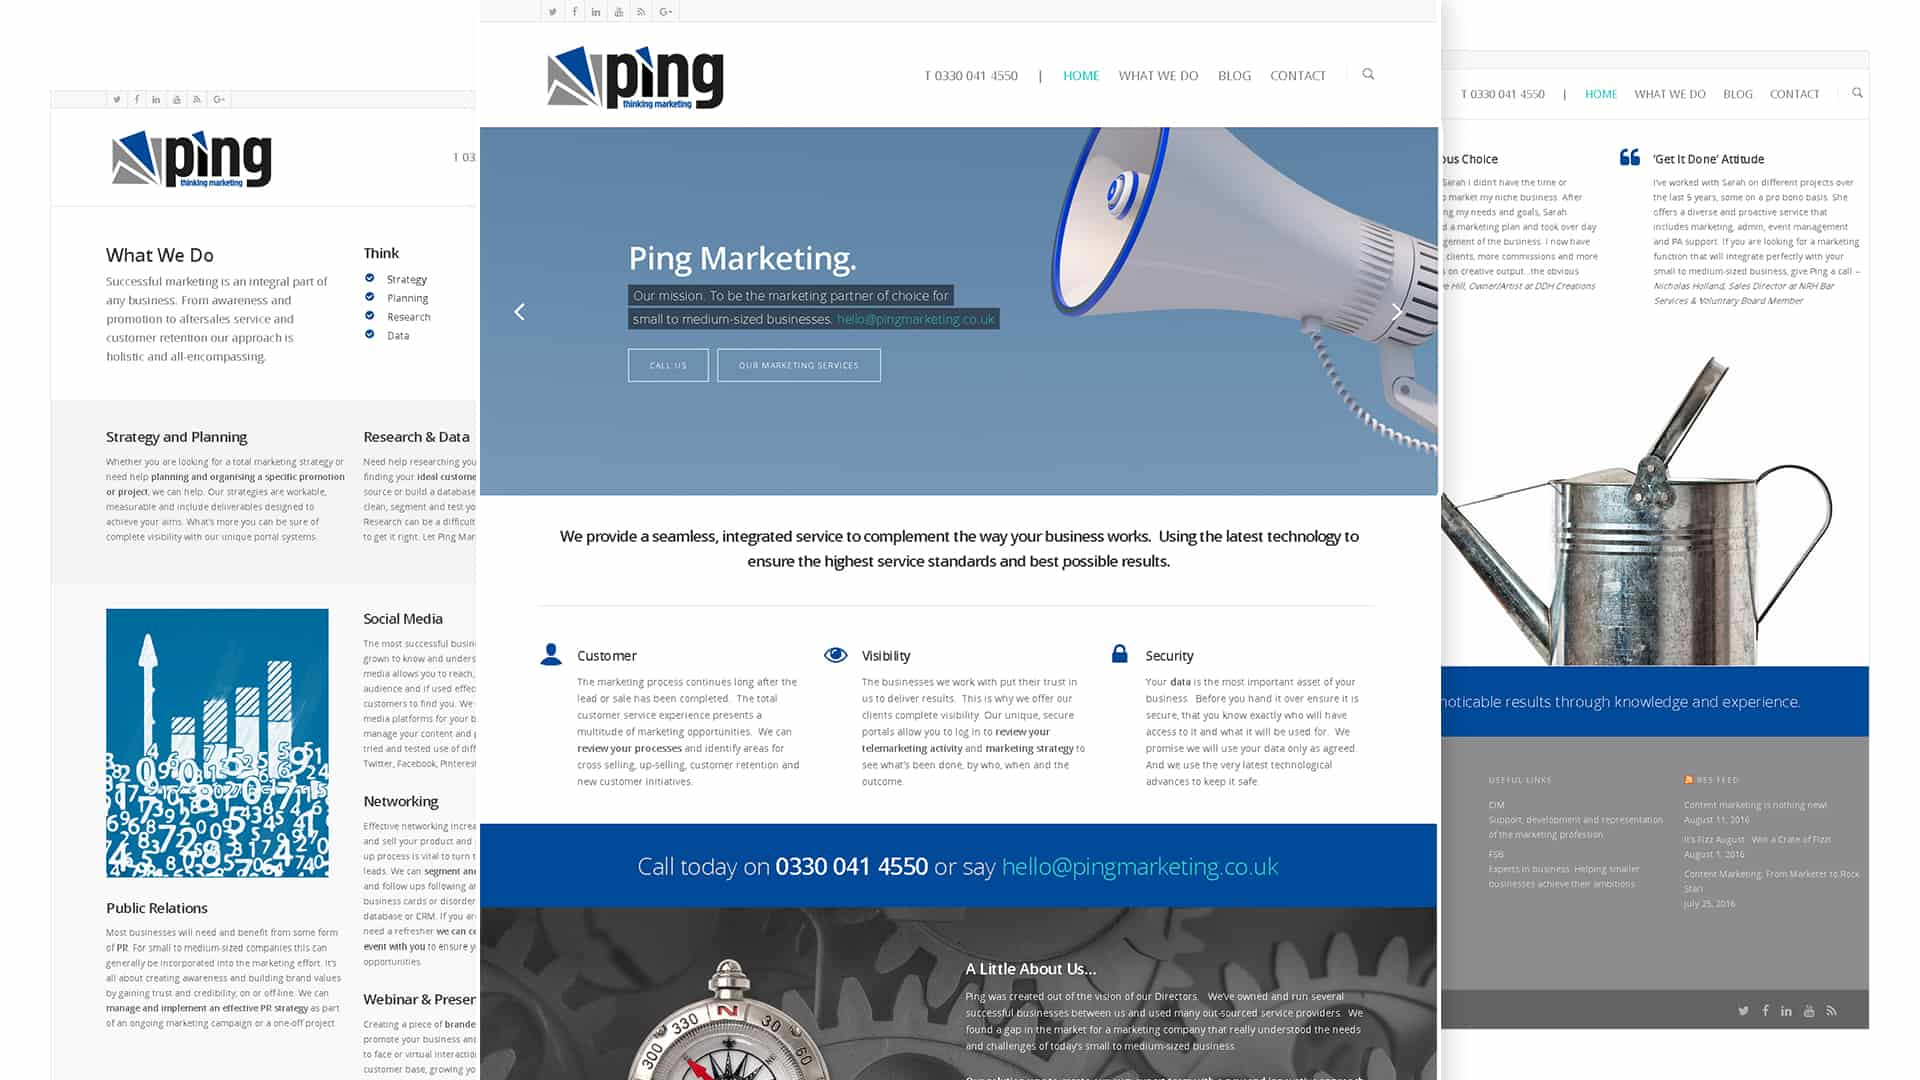 Ping Marketing Website Design and Production